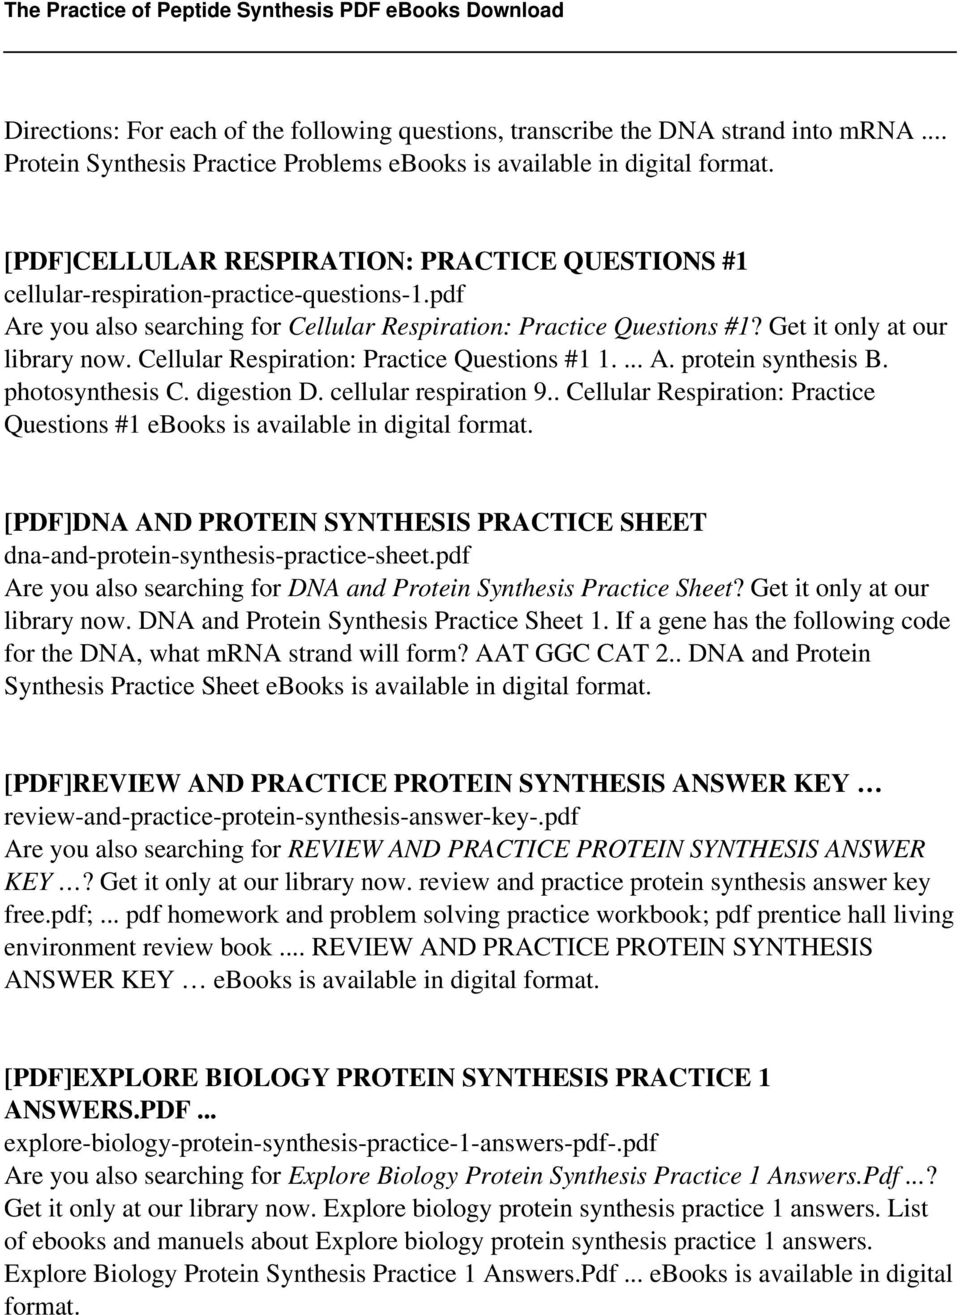 pdf Are you also searching for Cellular Respiration: Practice Questions #1? Get it only at our library now. Cellular Respiration: Practice Questions #1 1.... A. protein synthesis B. photosynthesis C.